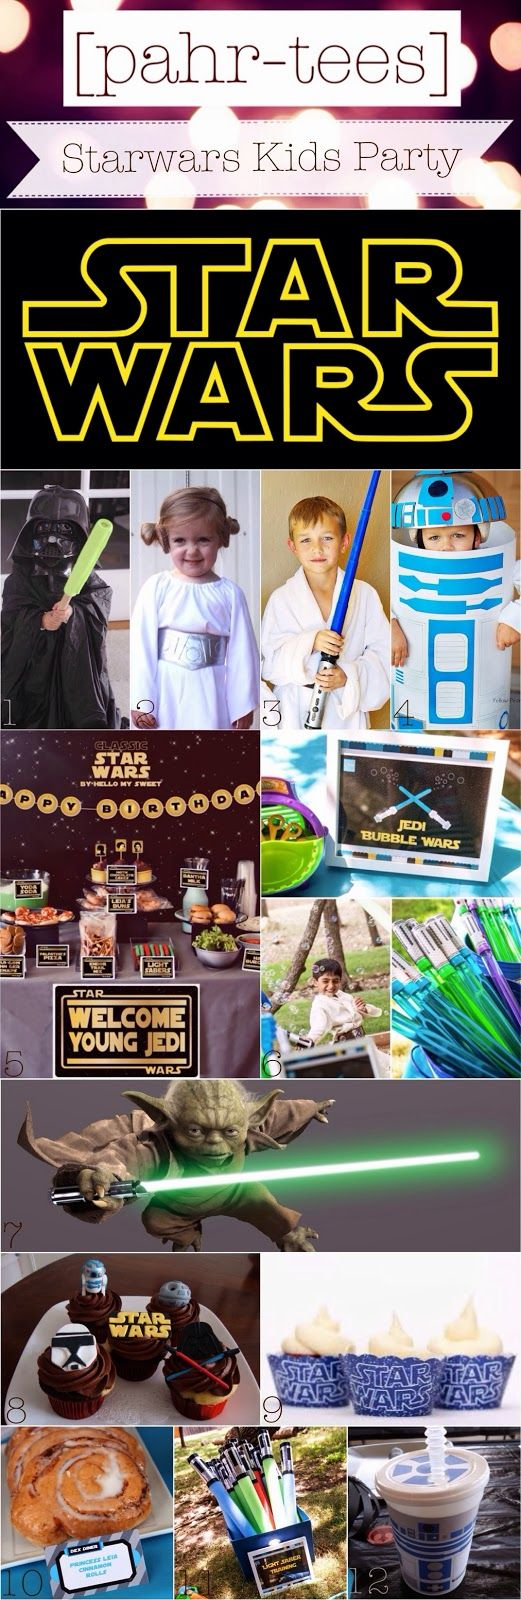 Moodboard StarWars Kids Party | pahr-tees.blogspot.com